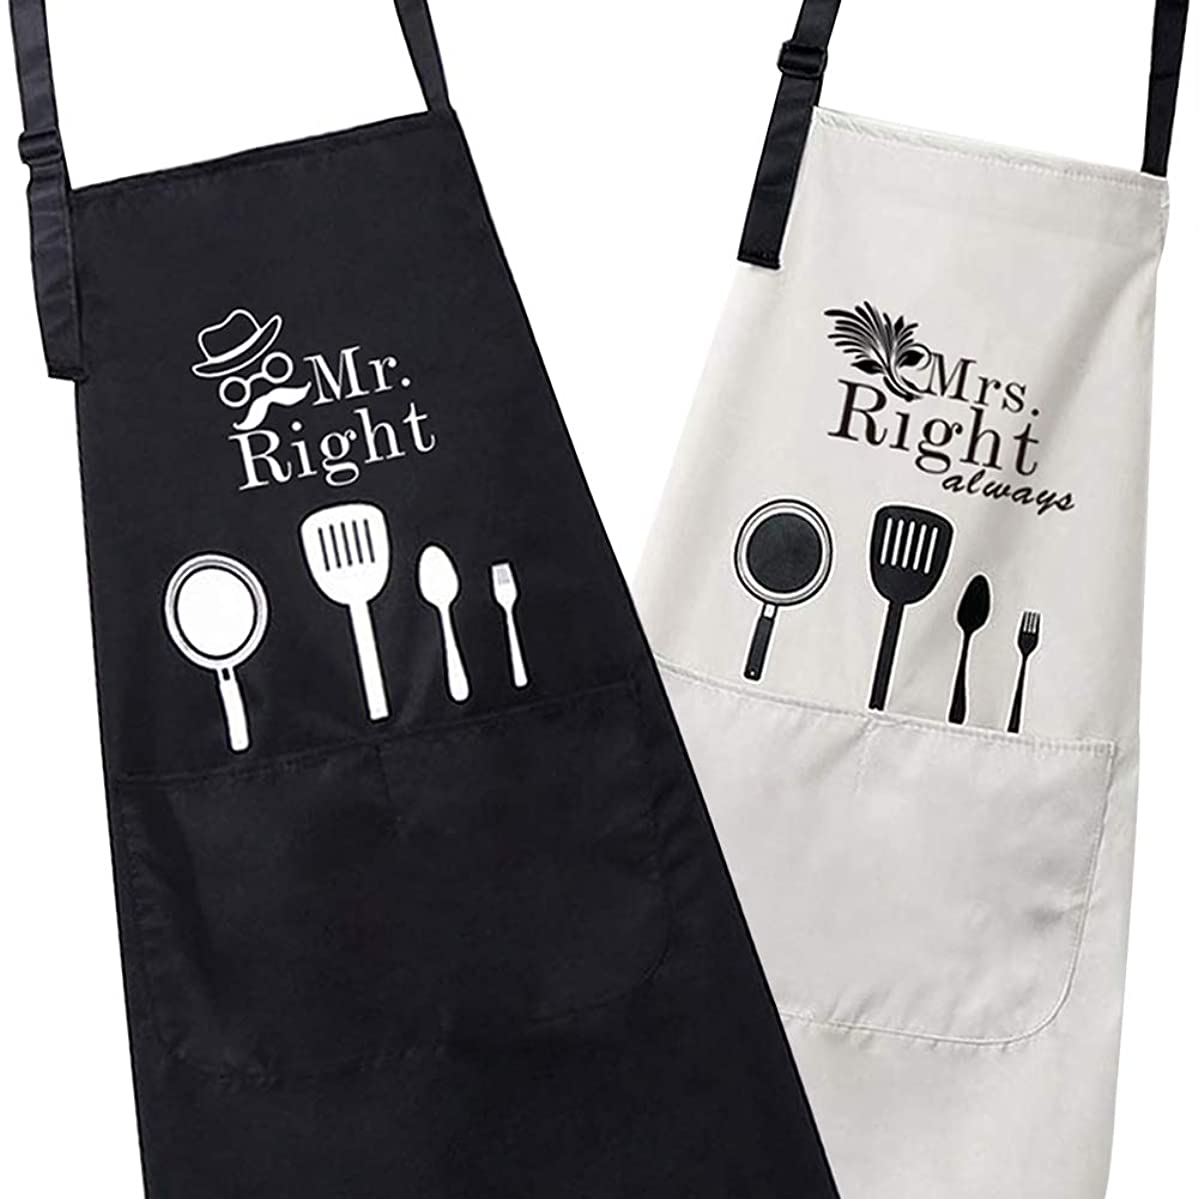 Prothoe 2 Pack Waterproof Kitchen Cooking Bib Aprons Set Funny Creative Mr. & Mrs. Right Engagement, Wedding Gifts for Couples